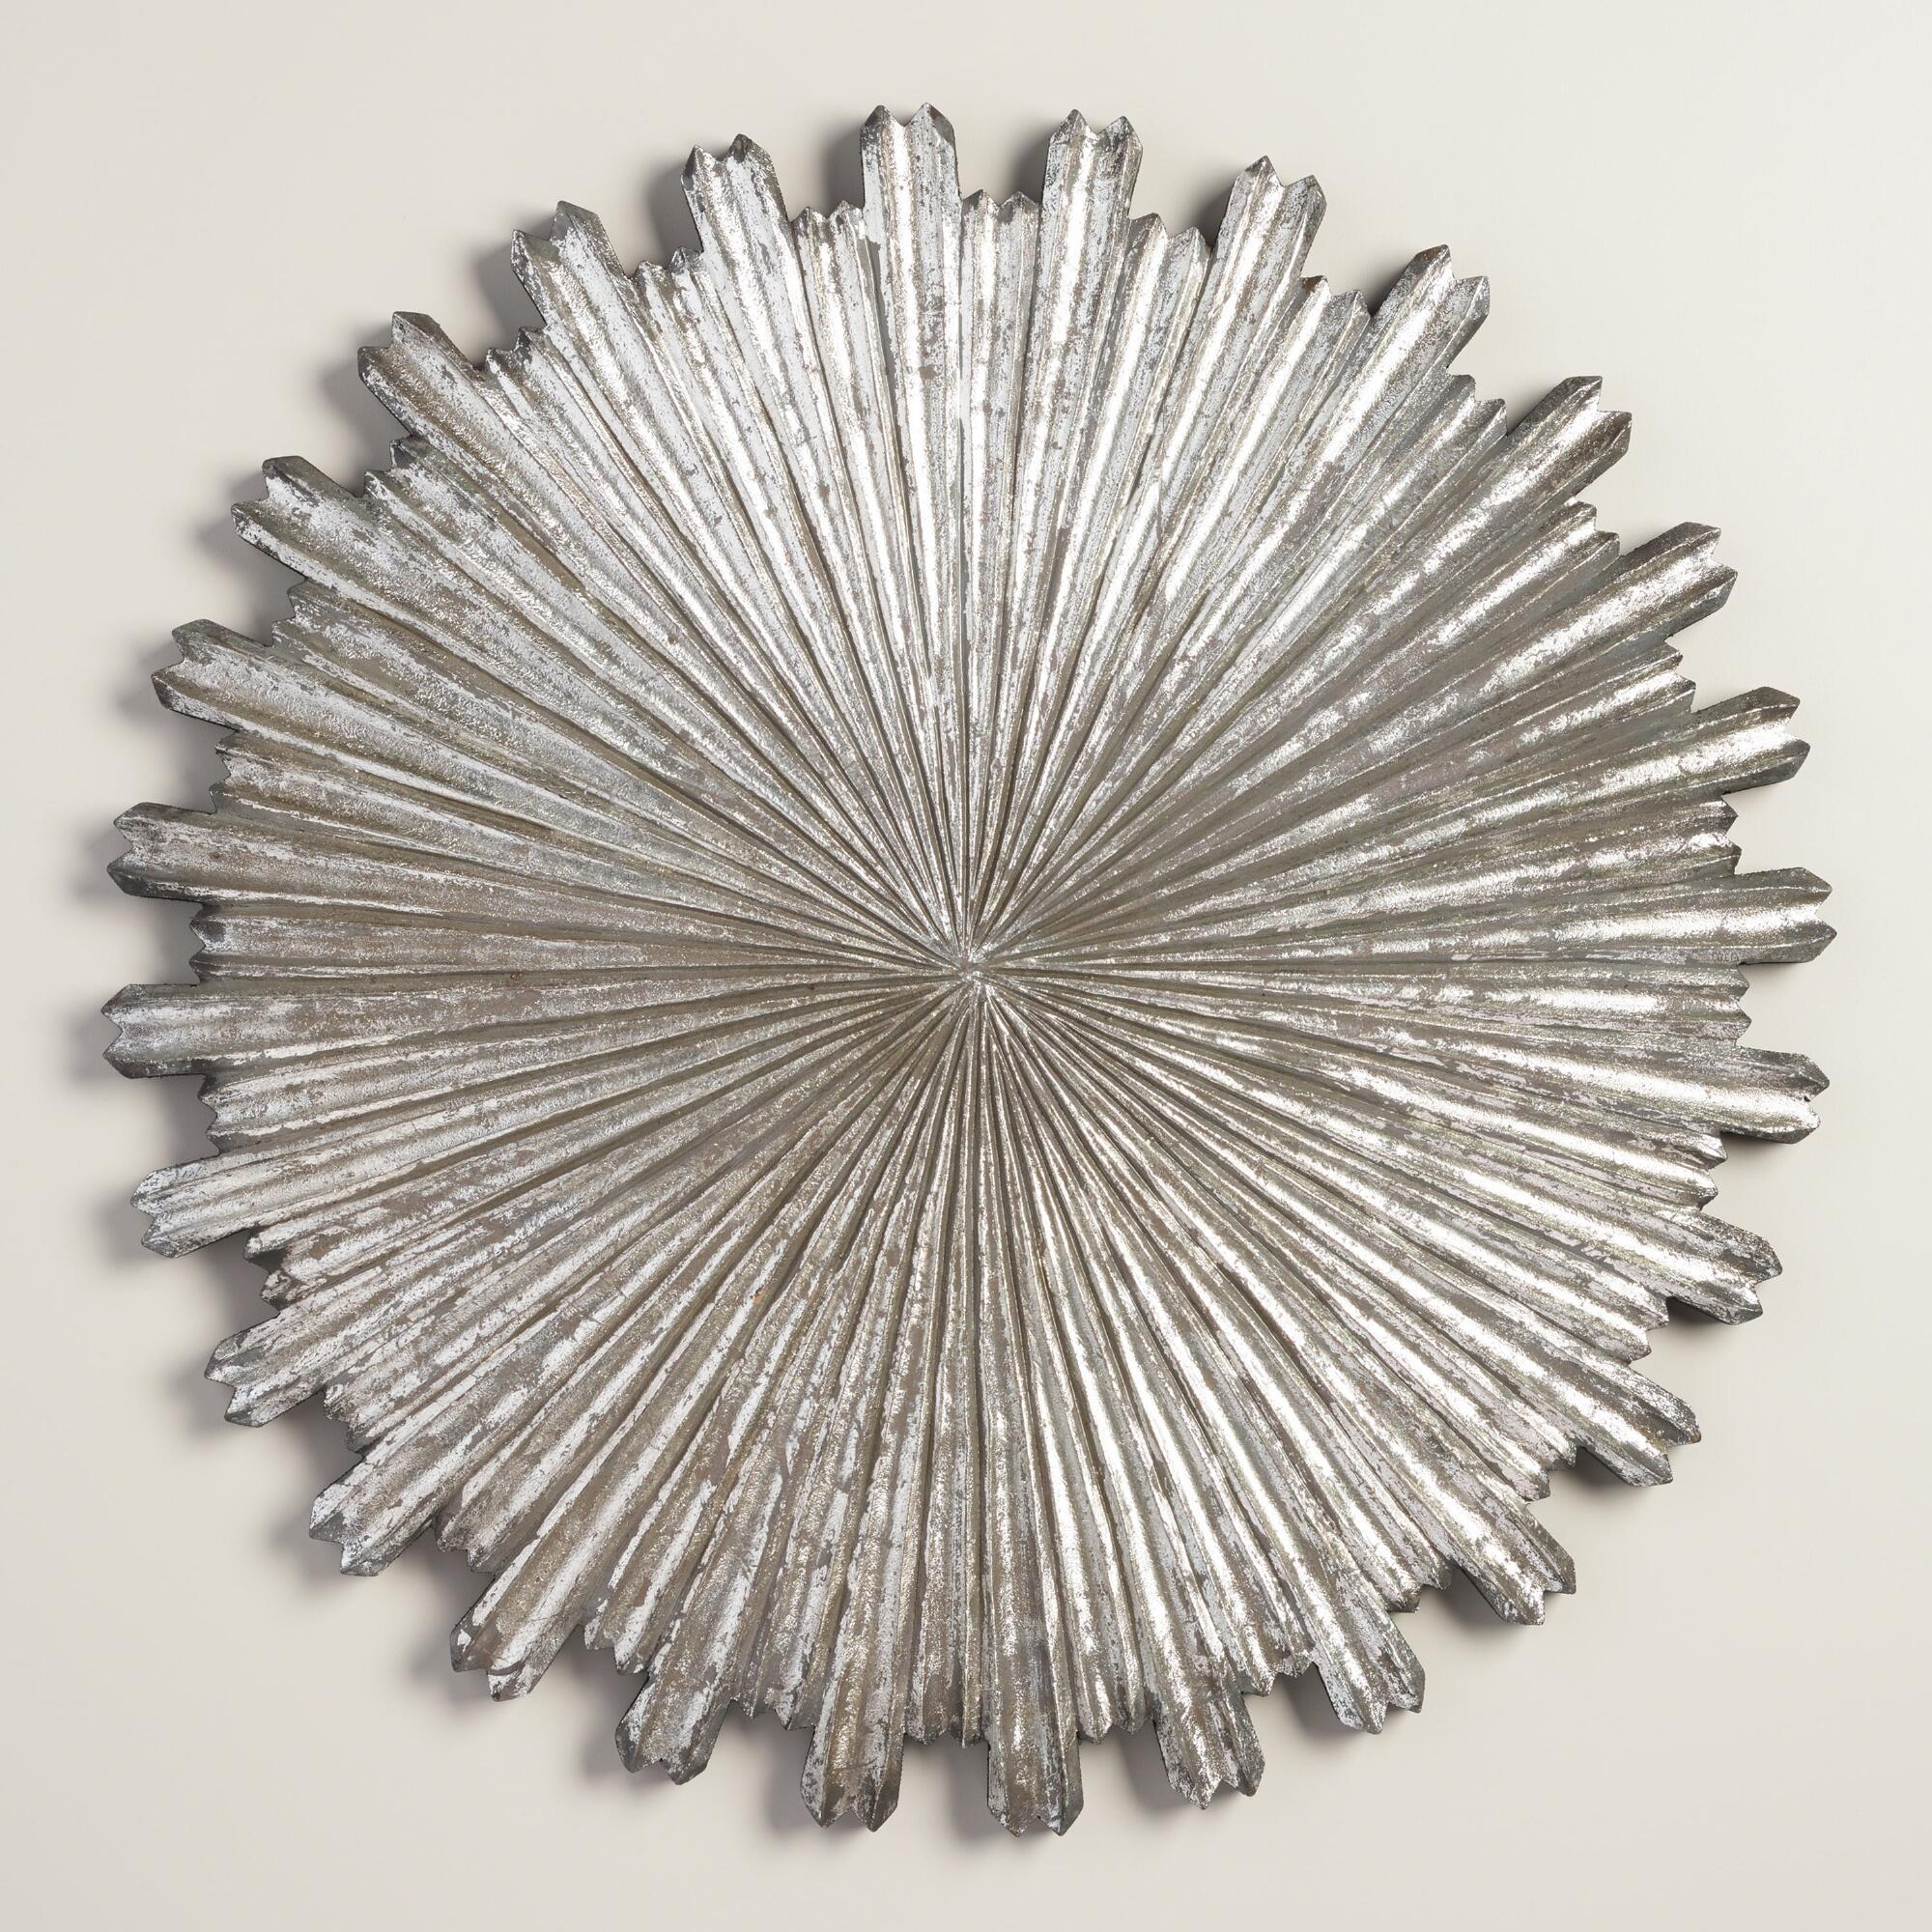 Wall Art Designs: Sunburst Wall Art Silver Wall Decor On Metal With Regard To Silver Starburst Wall Art (View 4 of 20)